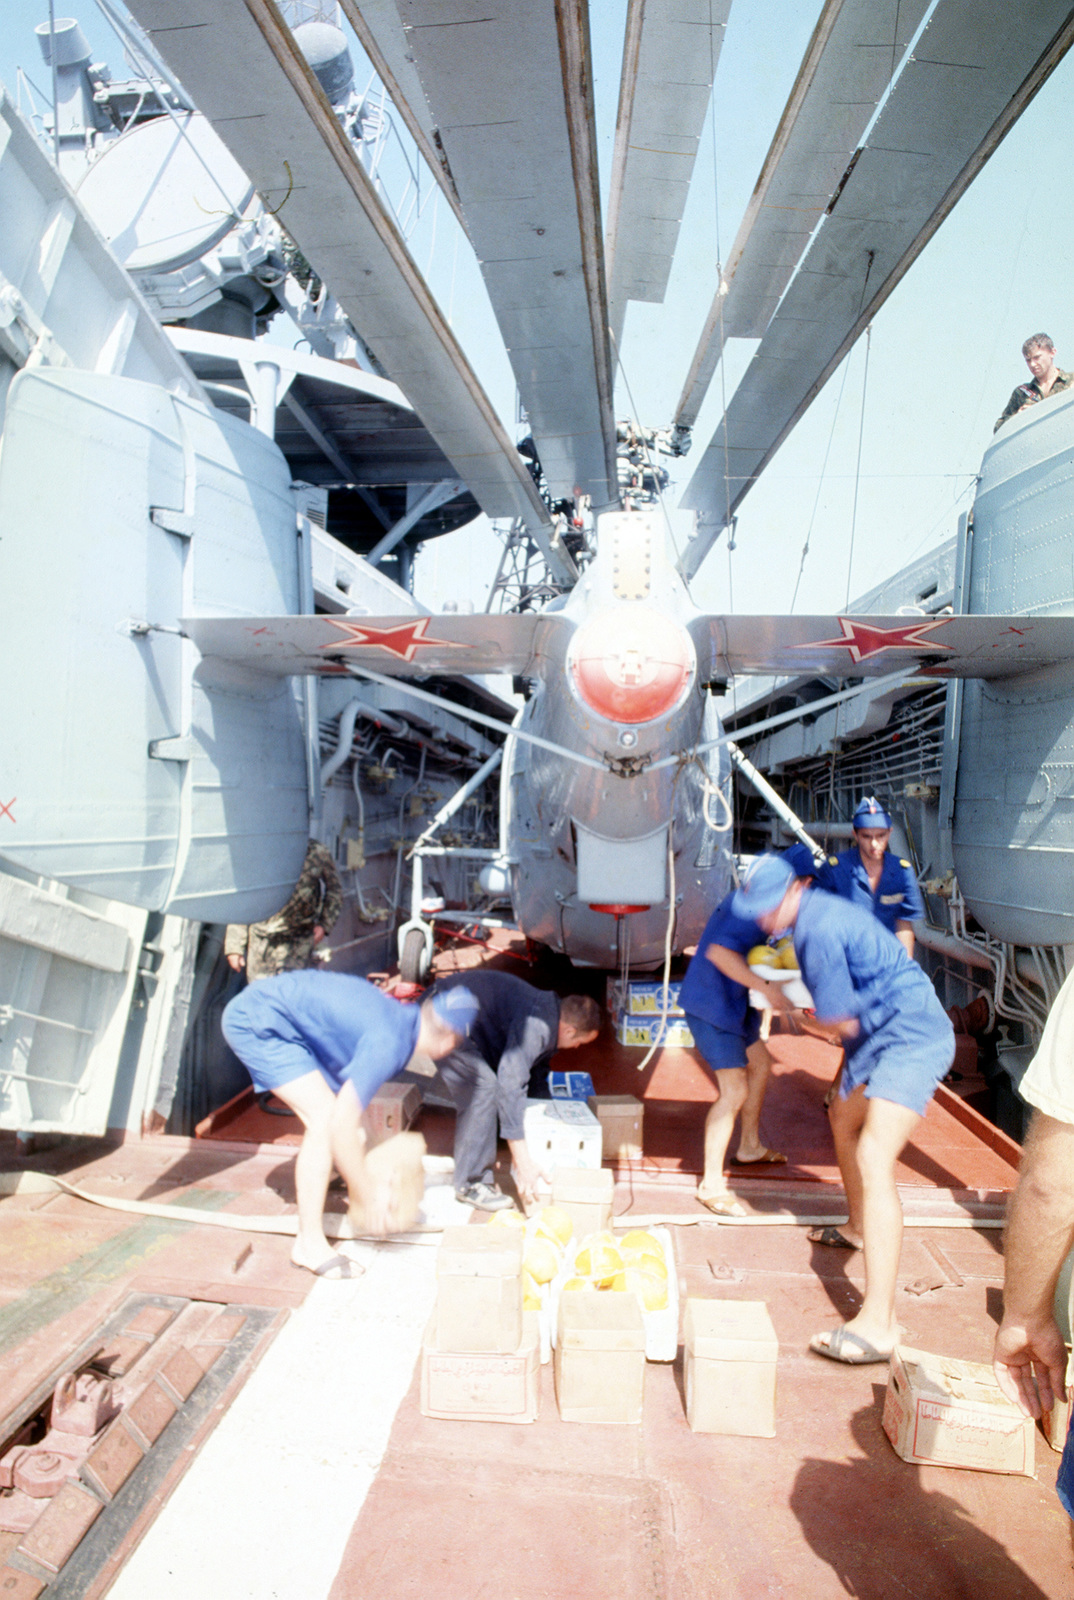 Russian sailors into the hangar bay aboard the Russian guided missile destroyer ADMIRAL VINOGRADOV (BPK-554) following the cargo's delivery by helicopter during the first Russian/U.S. Navy underway replenishment operation